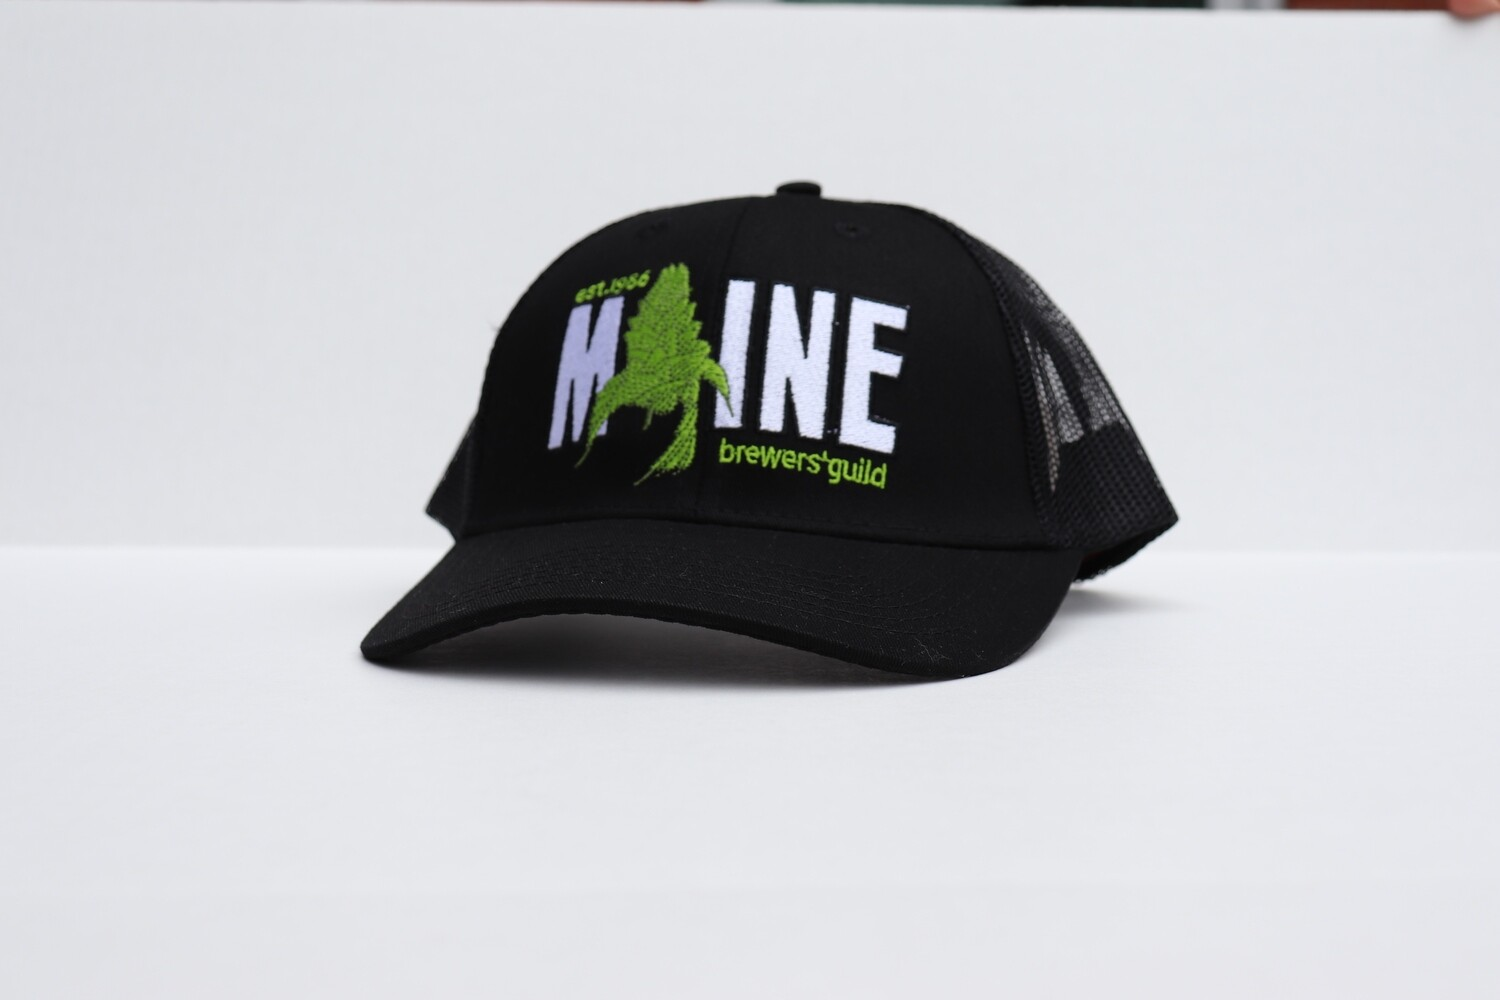 Maine Brewers Guild Hat